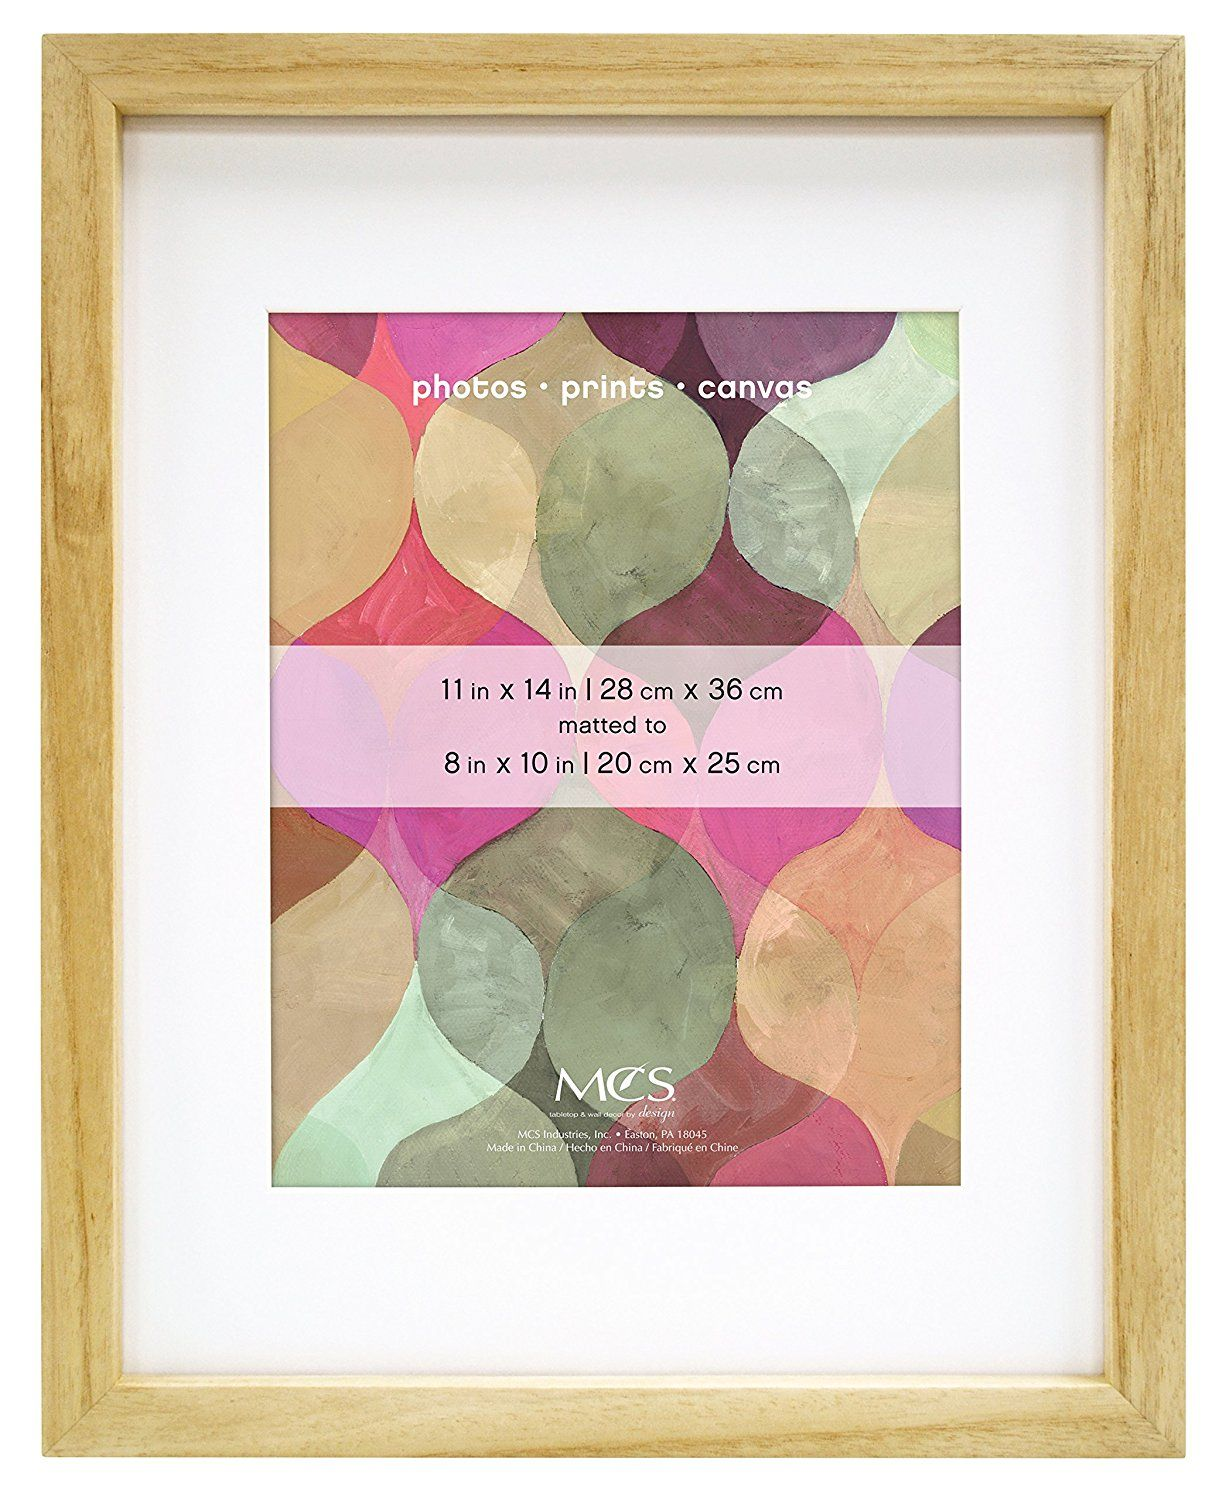 Mcs Art Frame 11 By 14 Inch Frame With 8 By 10 Inch Mat Opening Natural Finish 47574 Check Out The Image By Visiting Wood Art Frames Frame Matting Frame